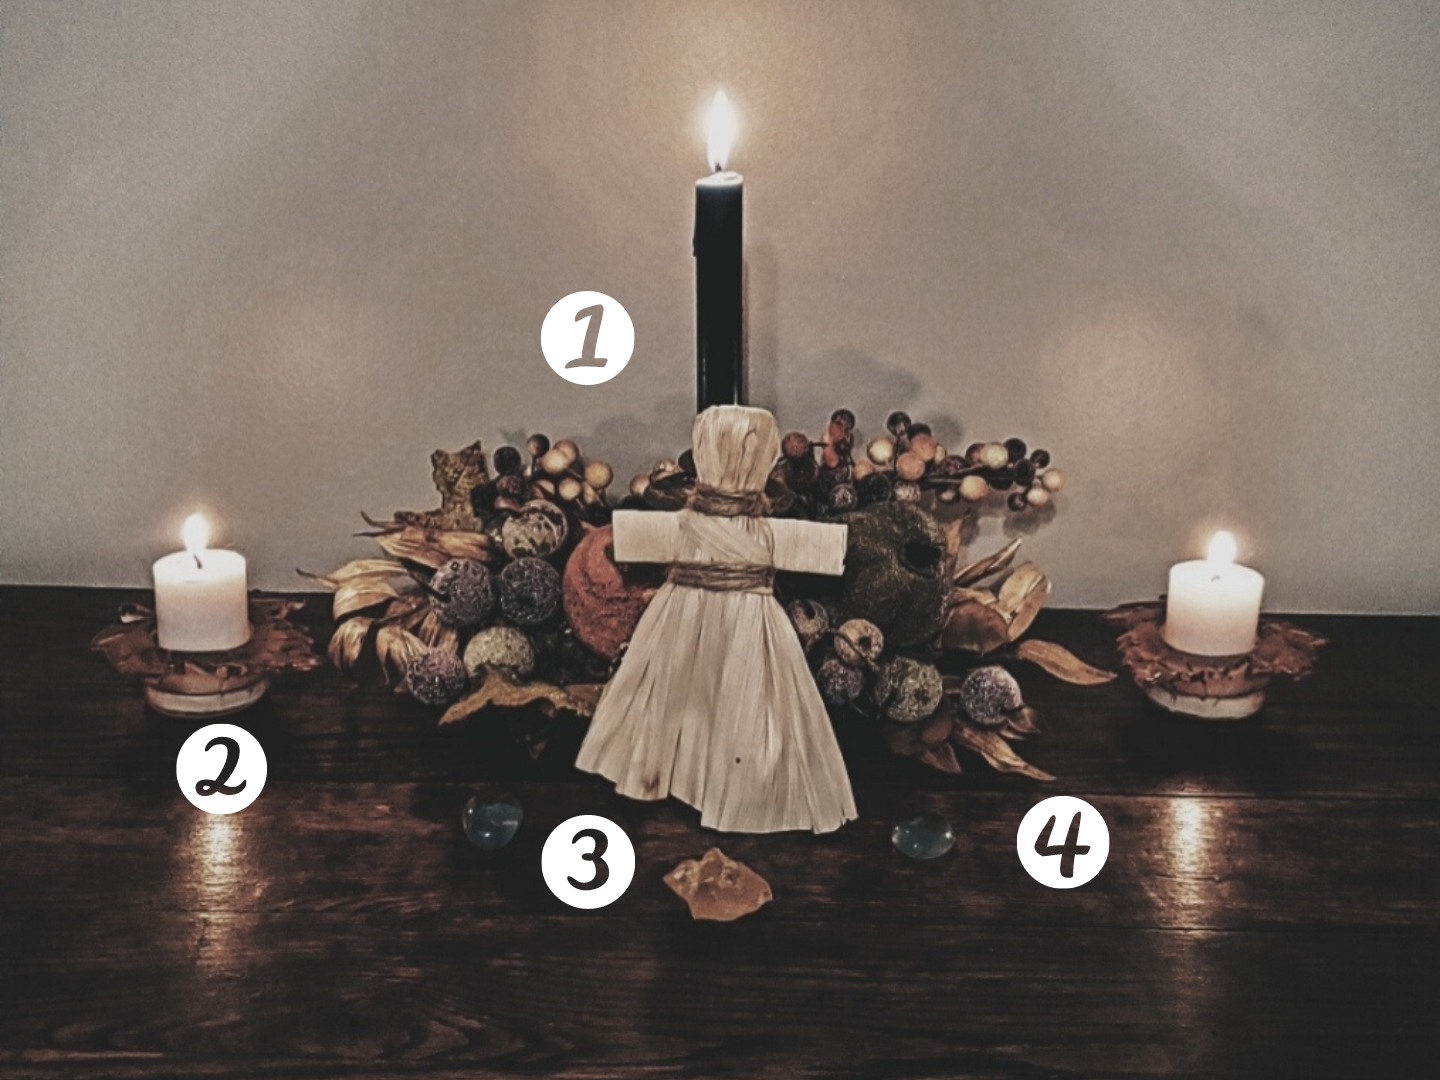 Autumn Equinox, altar, sabbat, Mabon, August Eve, witchcraft, witchy, hedgewitch, pagan, neopagan, wiccan, wicca